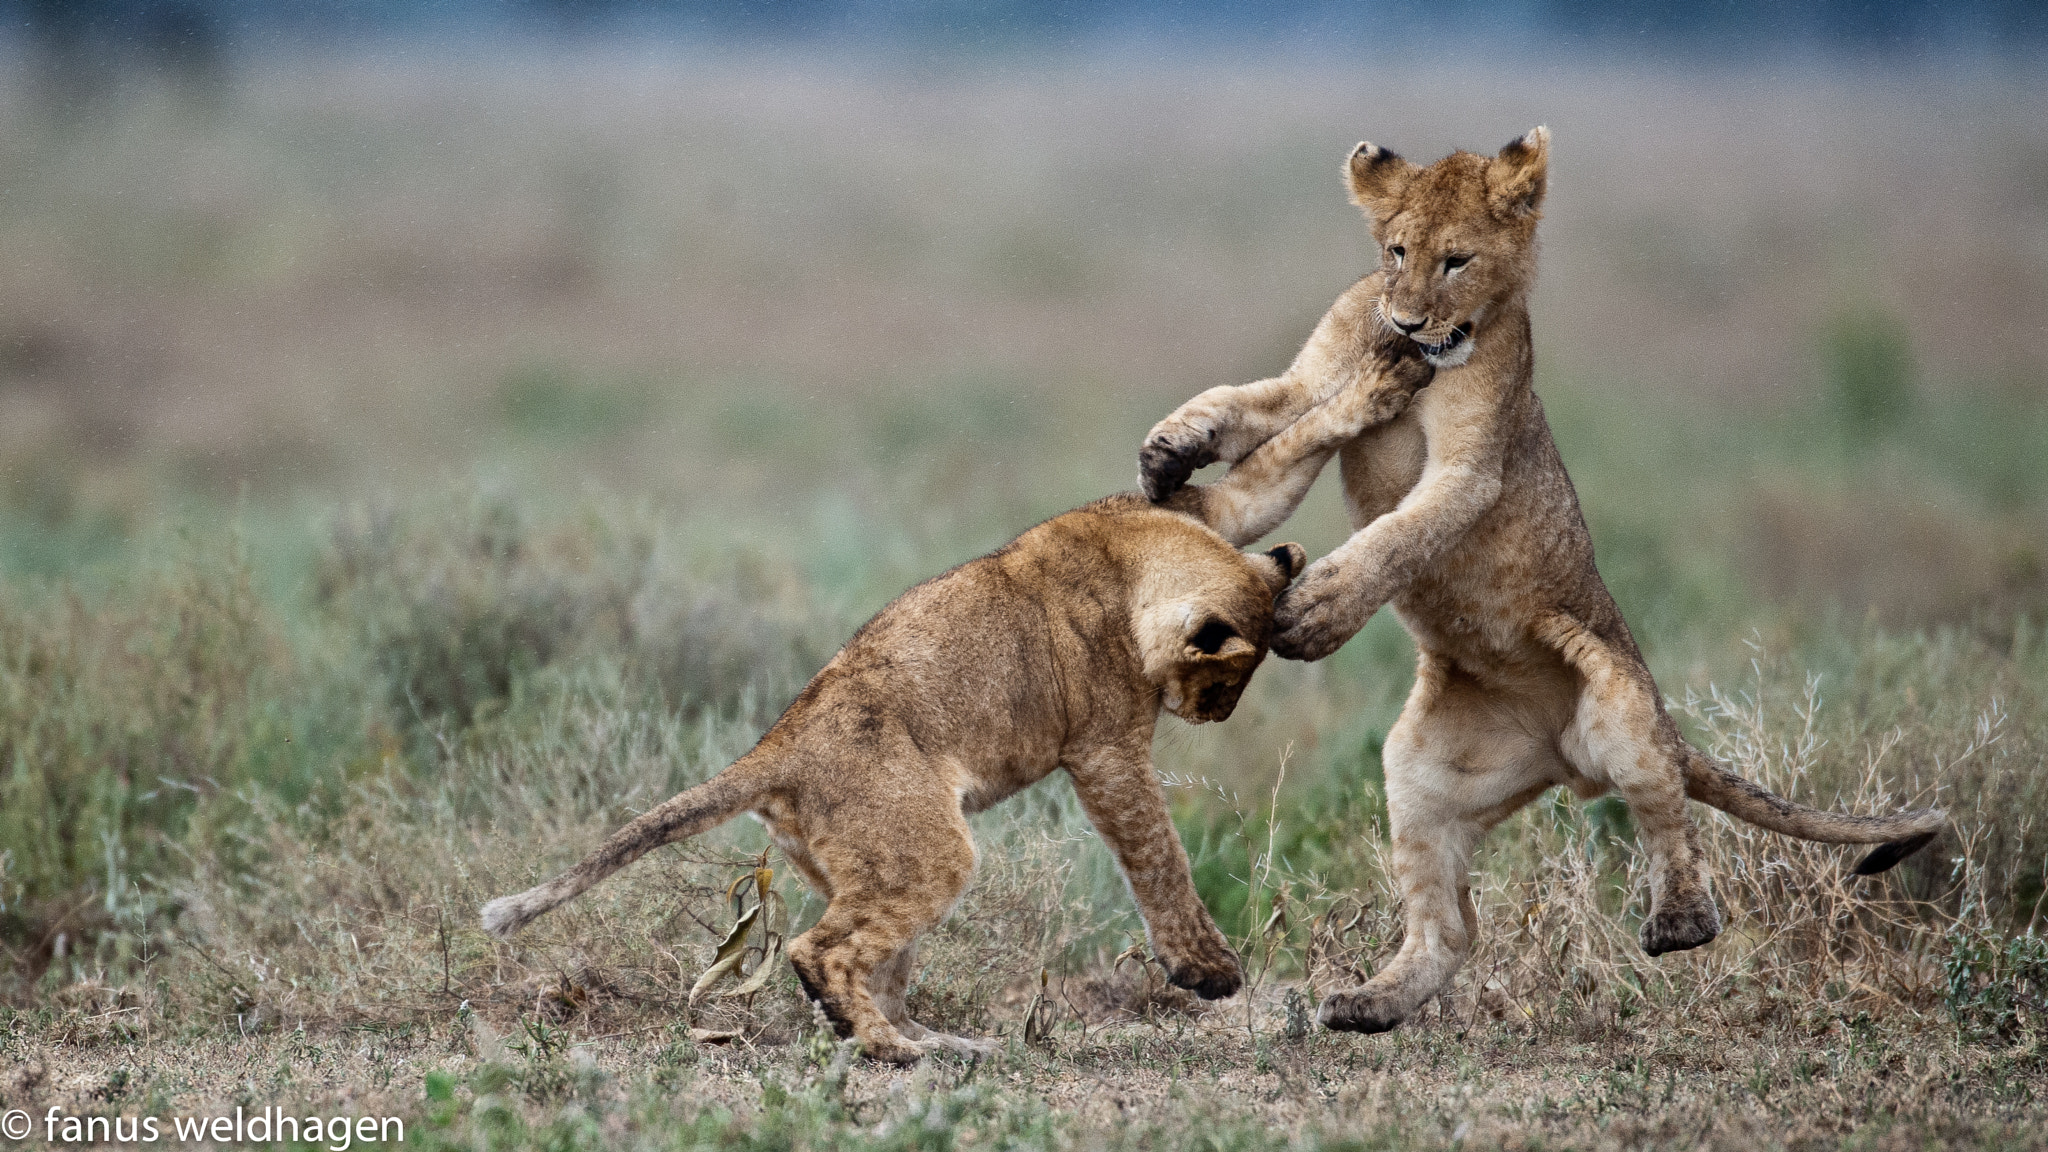 Photograph Playfighting Lion Cubs by Fanus Weldhagen on 500px